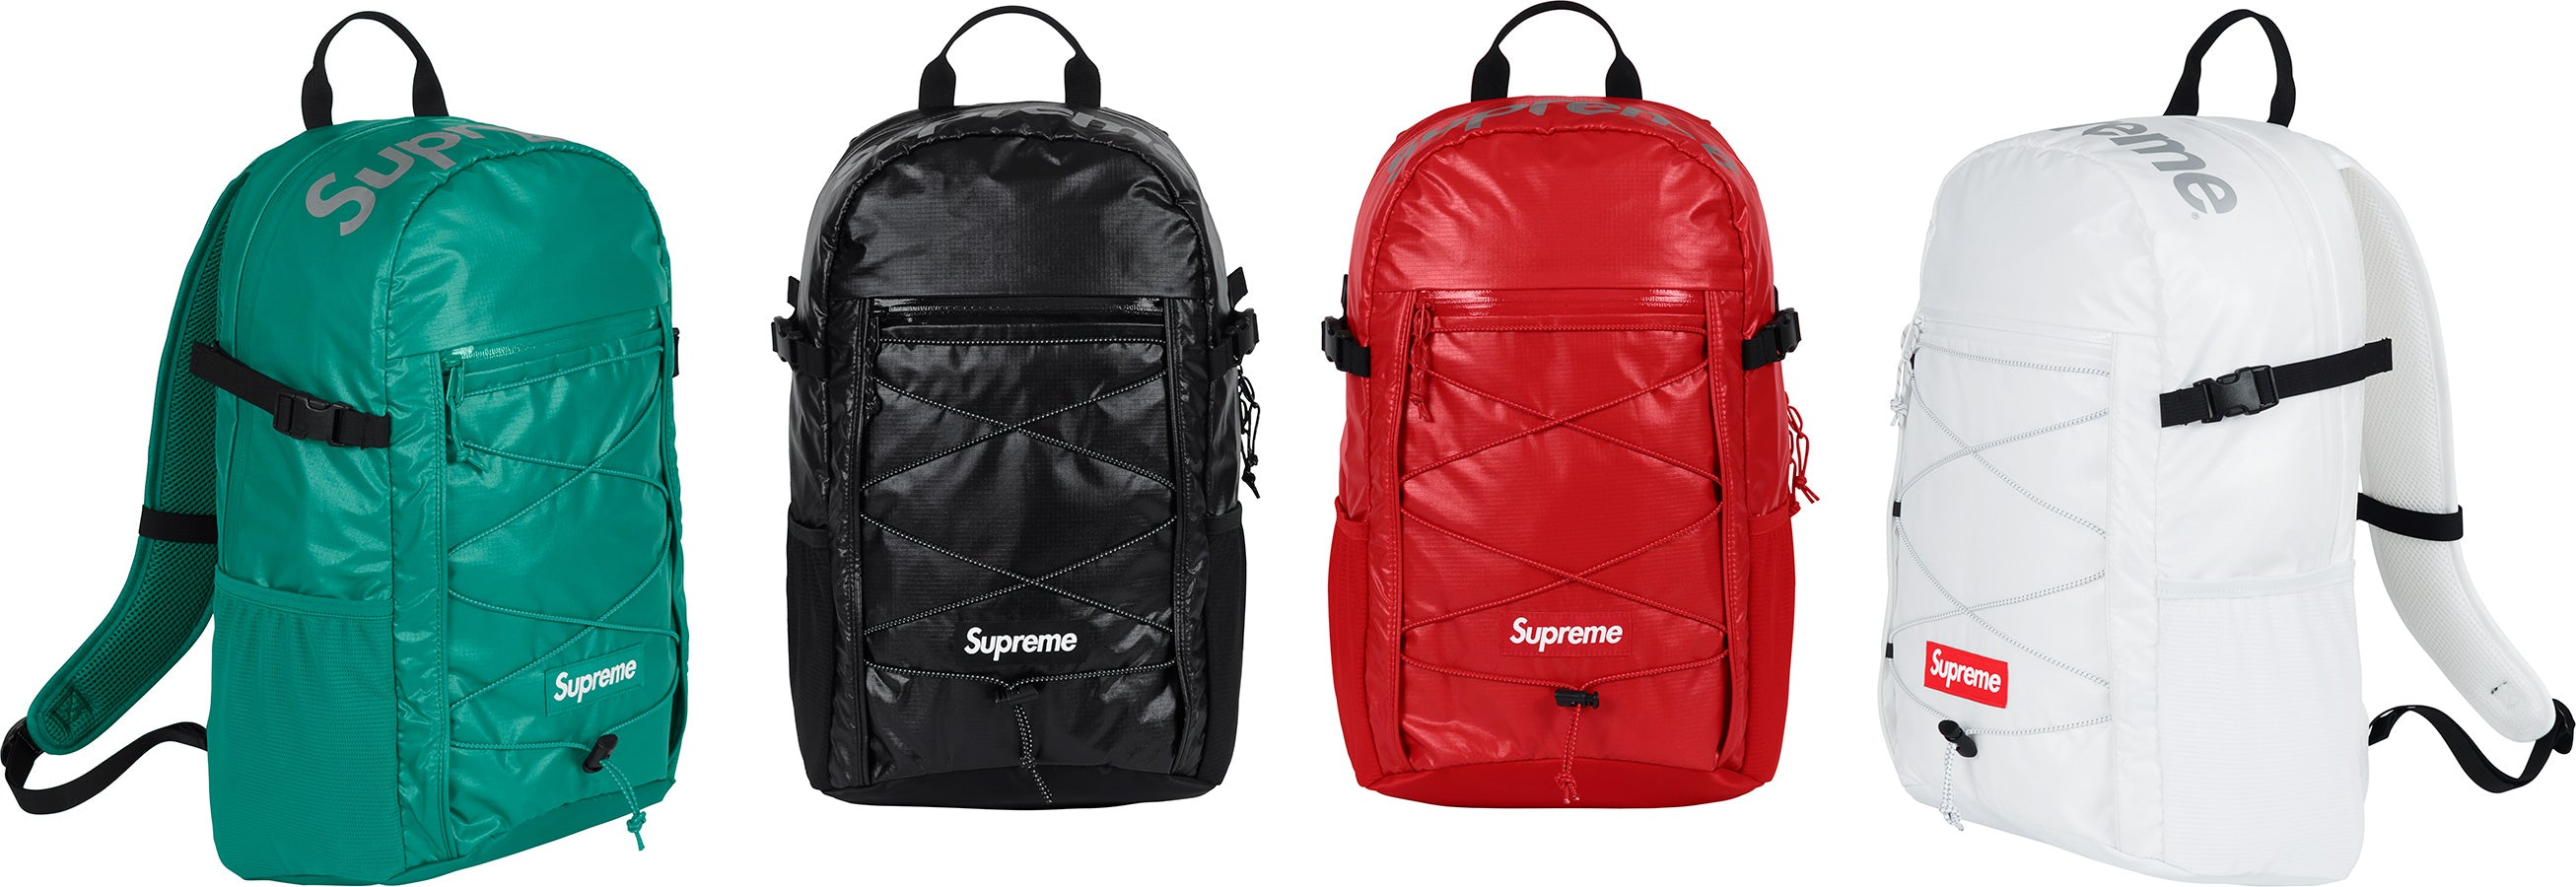 Laminated Backpack Supreme Fall/Winter 2017 (FW17)